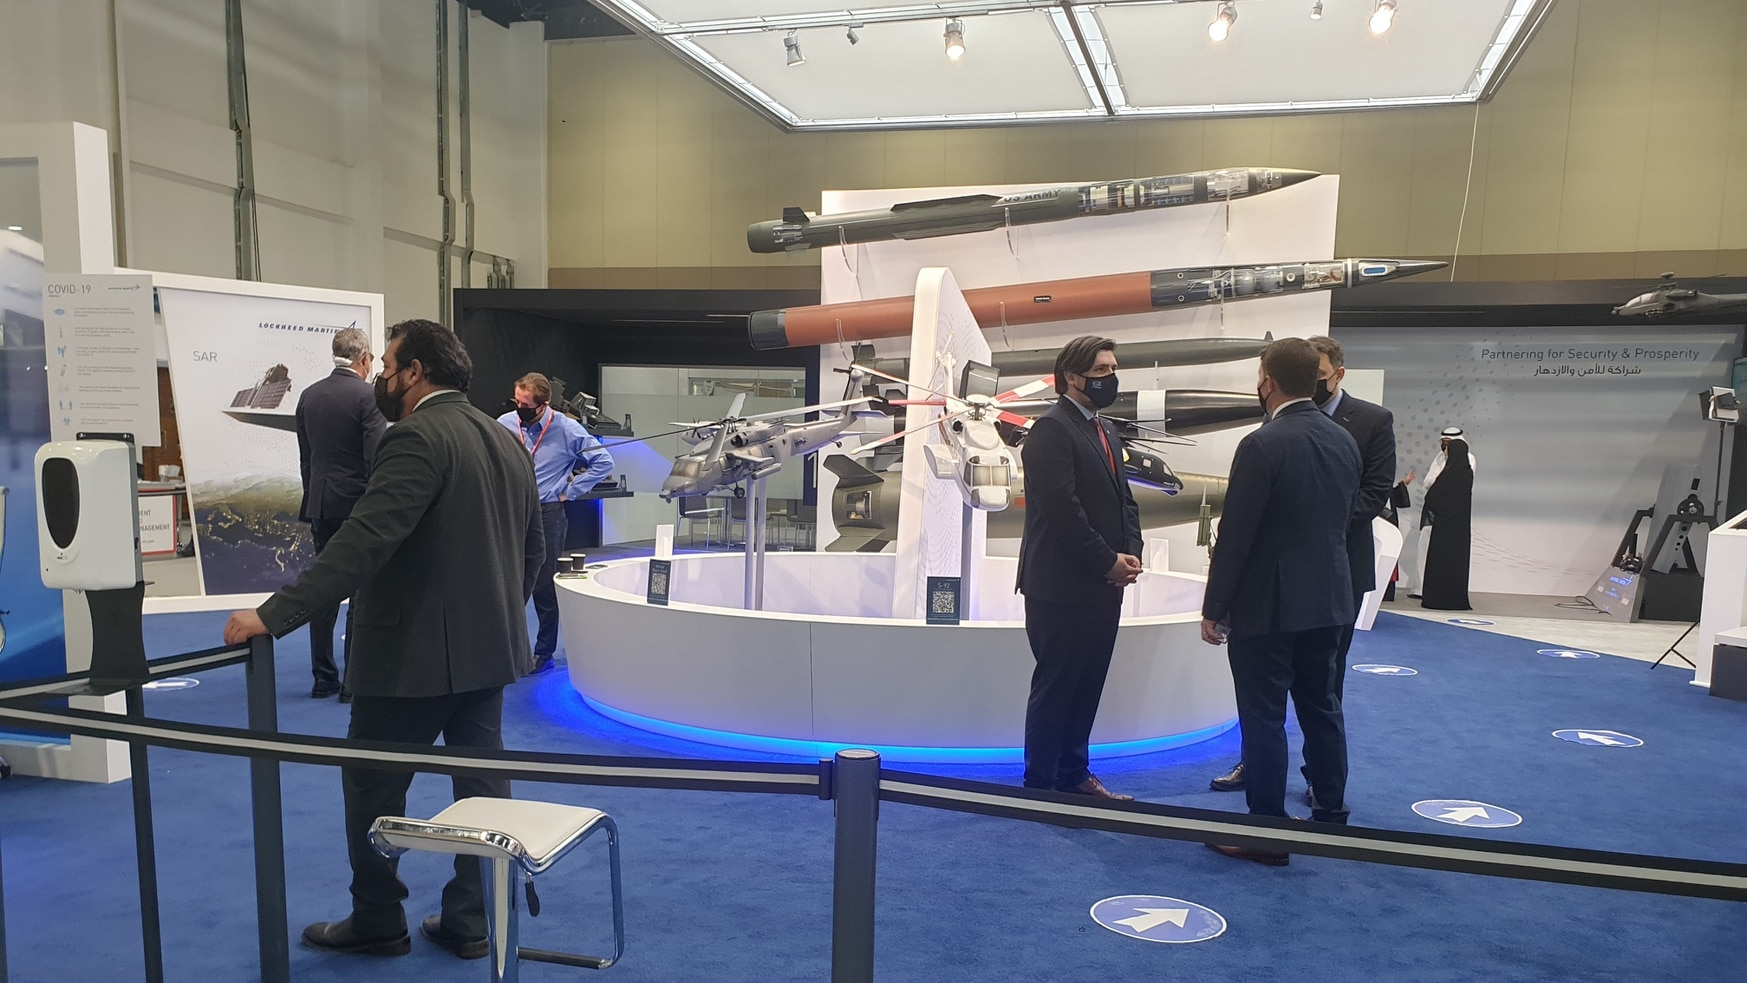 In February, the United Arab Emirates hosted the arms trade show IDEX. Some American firms showed up for the rare in-person event amid the pandemic. (Agnes Helou/Staff)